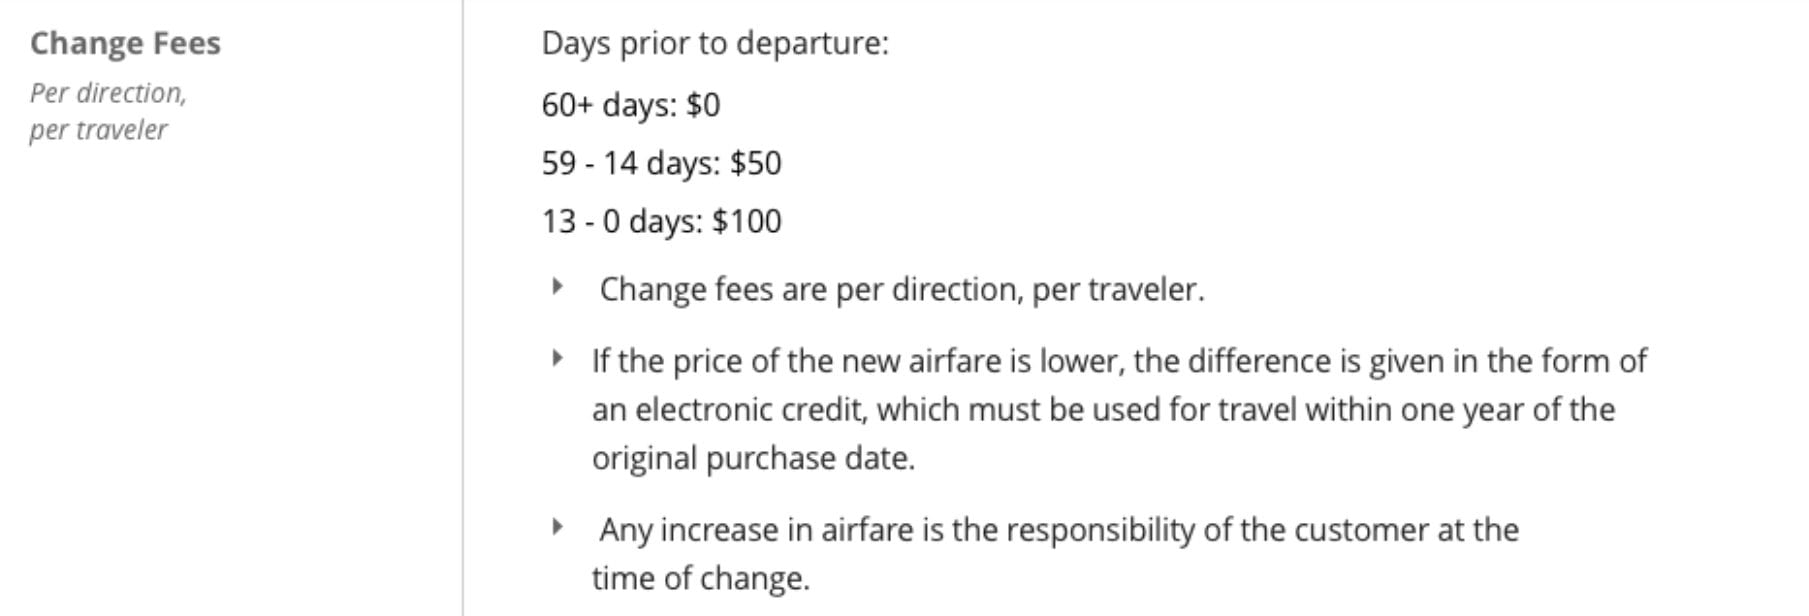 Sun Country Change Fees